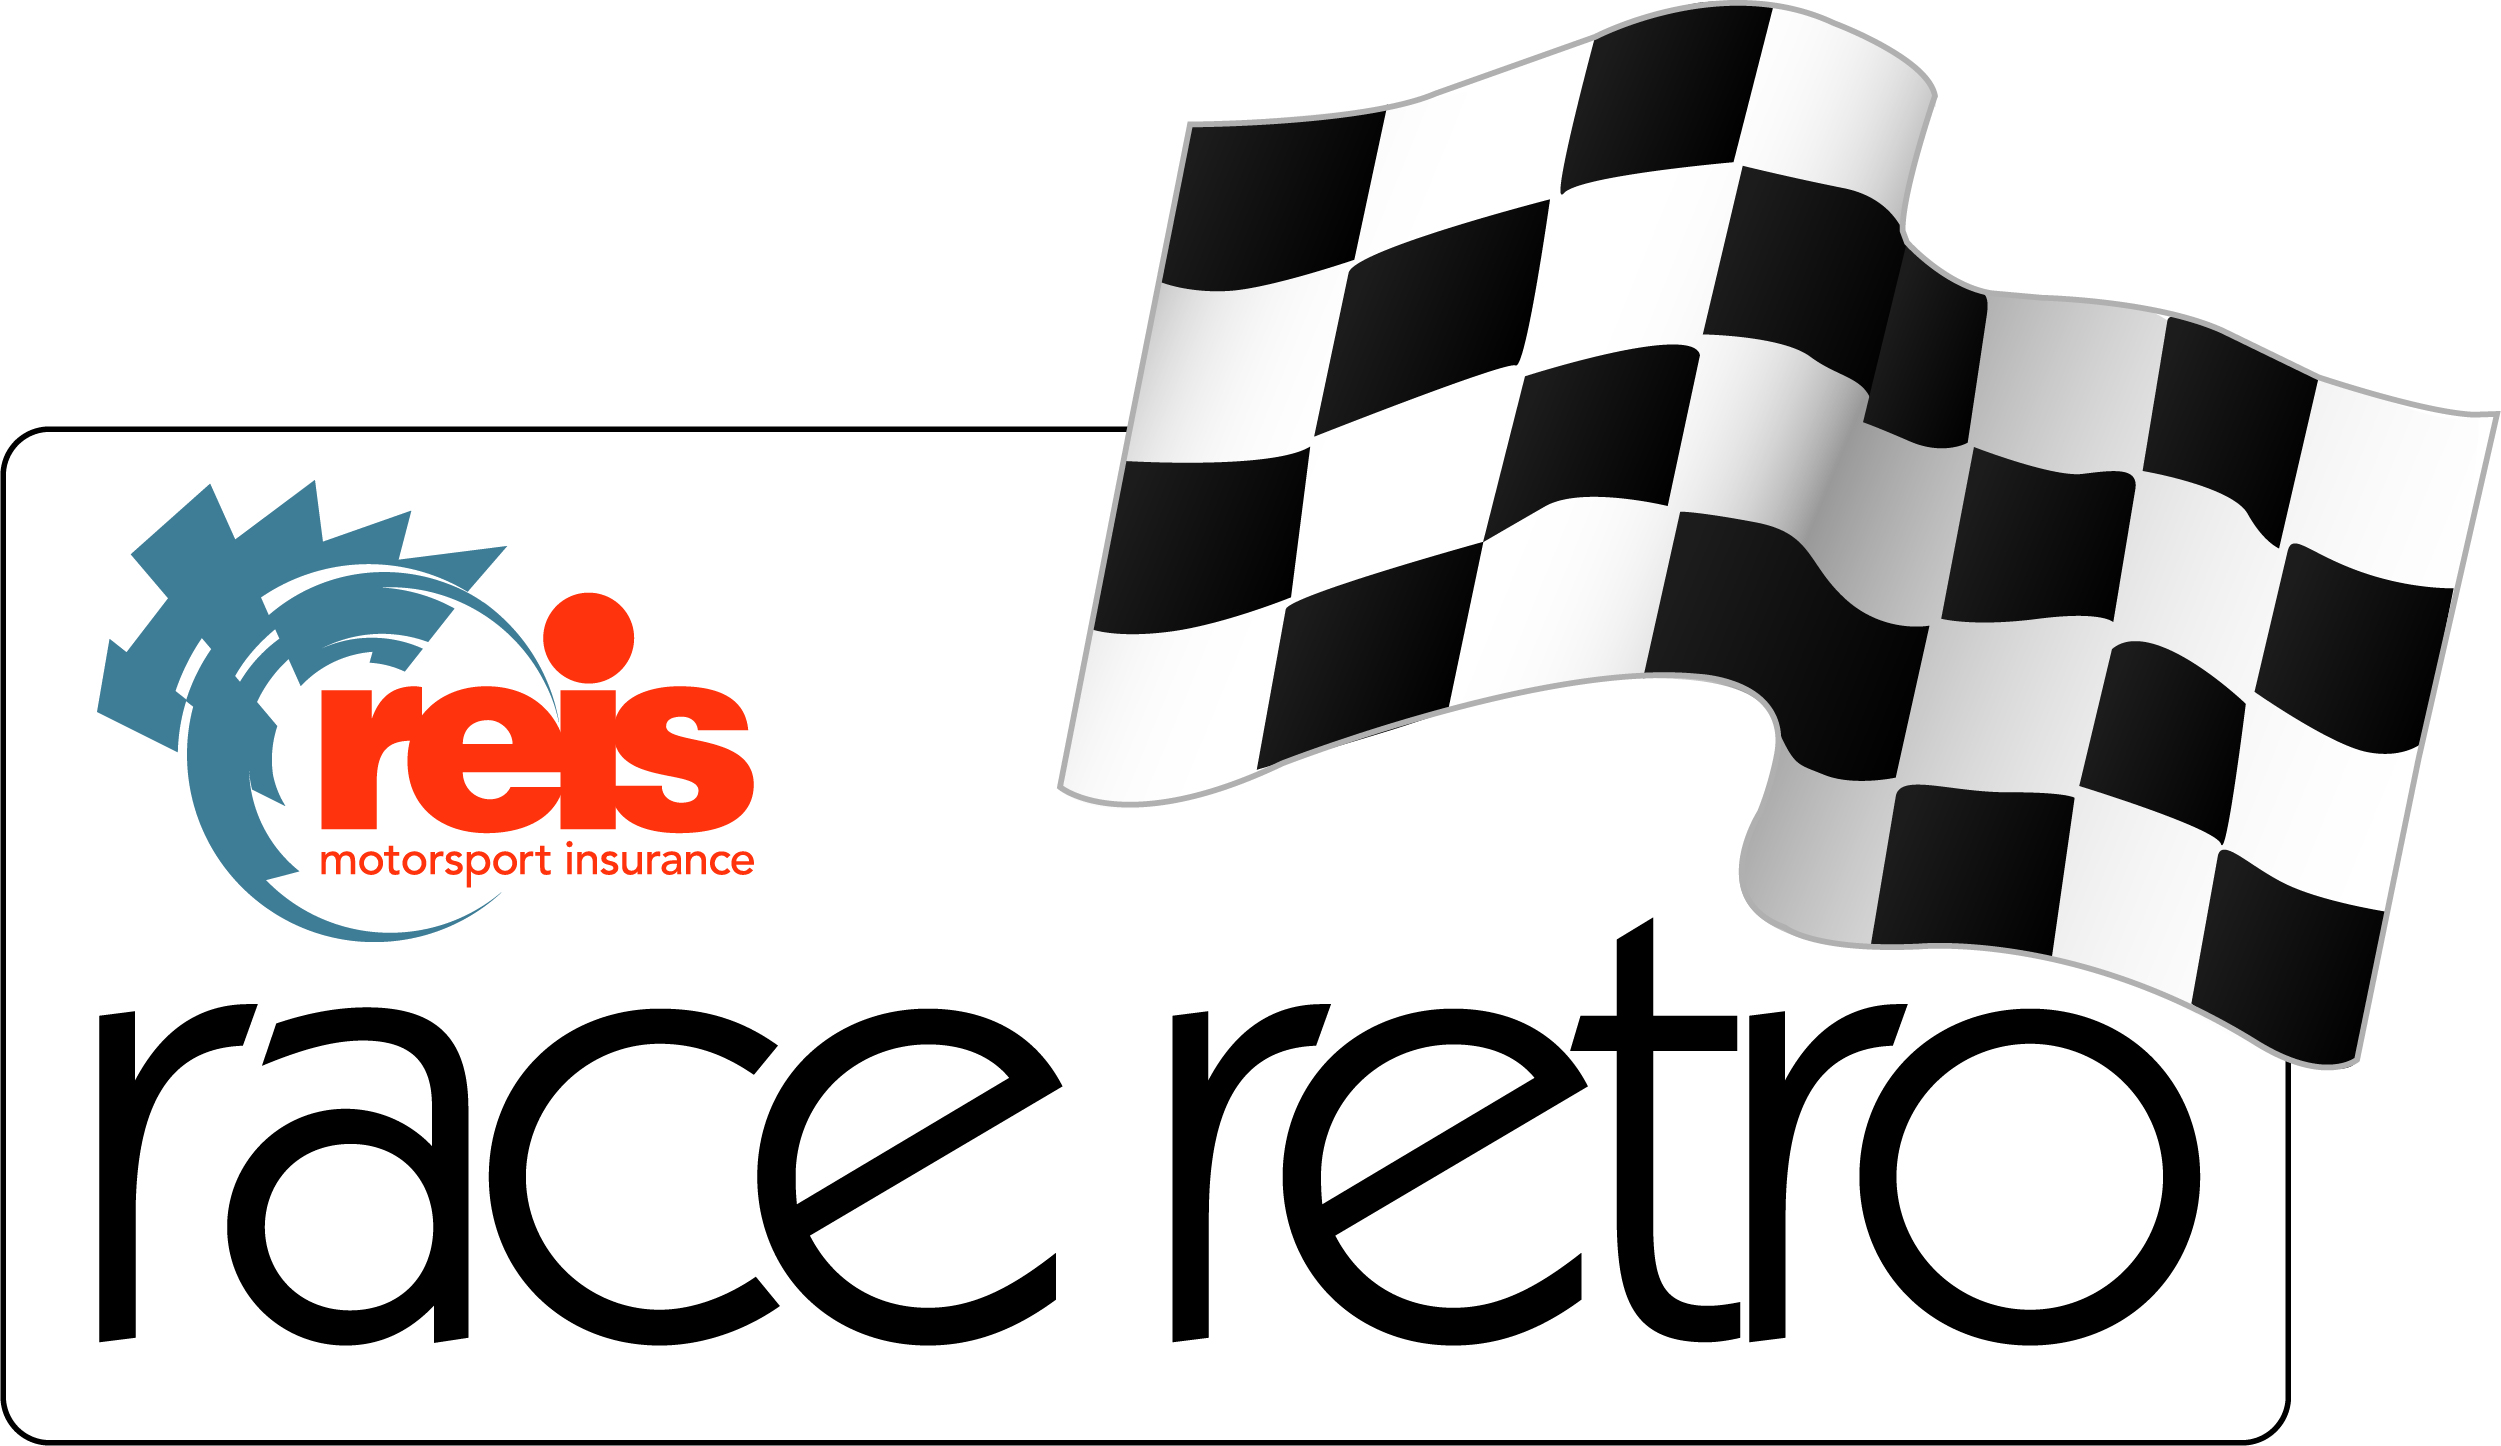 Reis Race Retro (21st - 23rd February 2020) logo with chequered flag